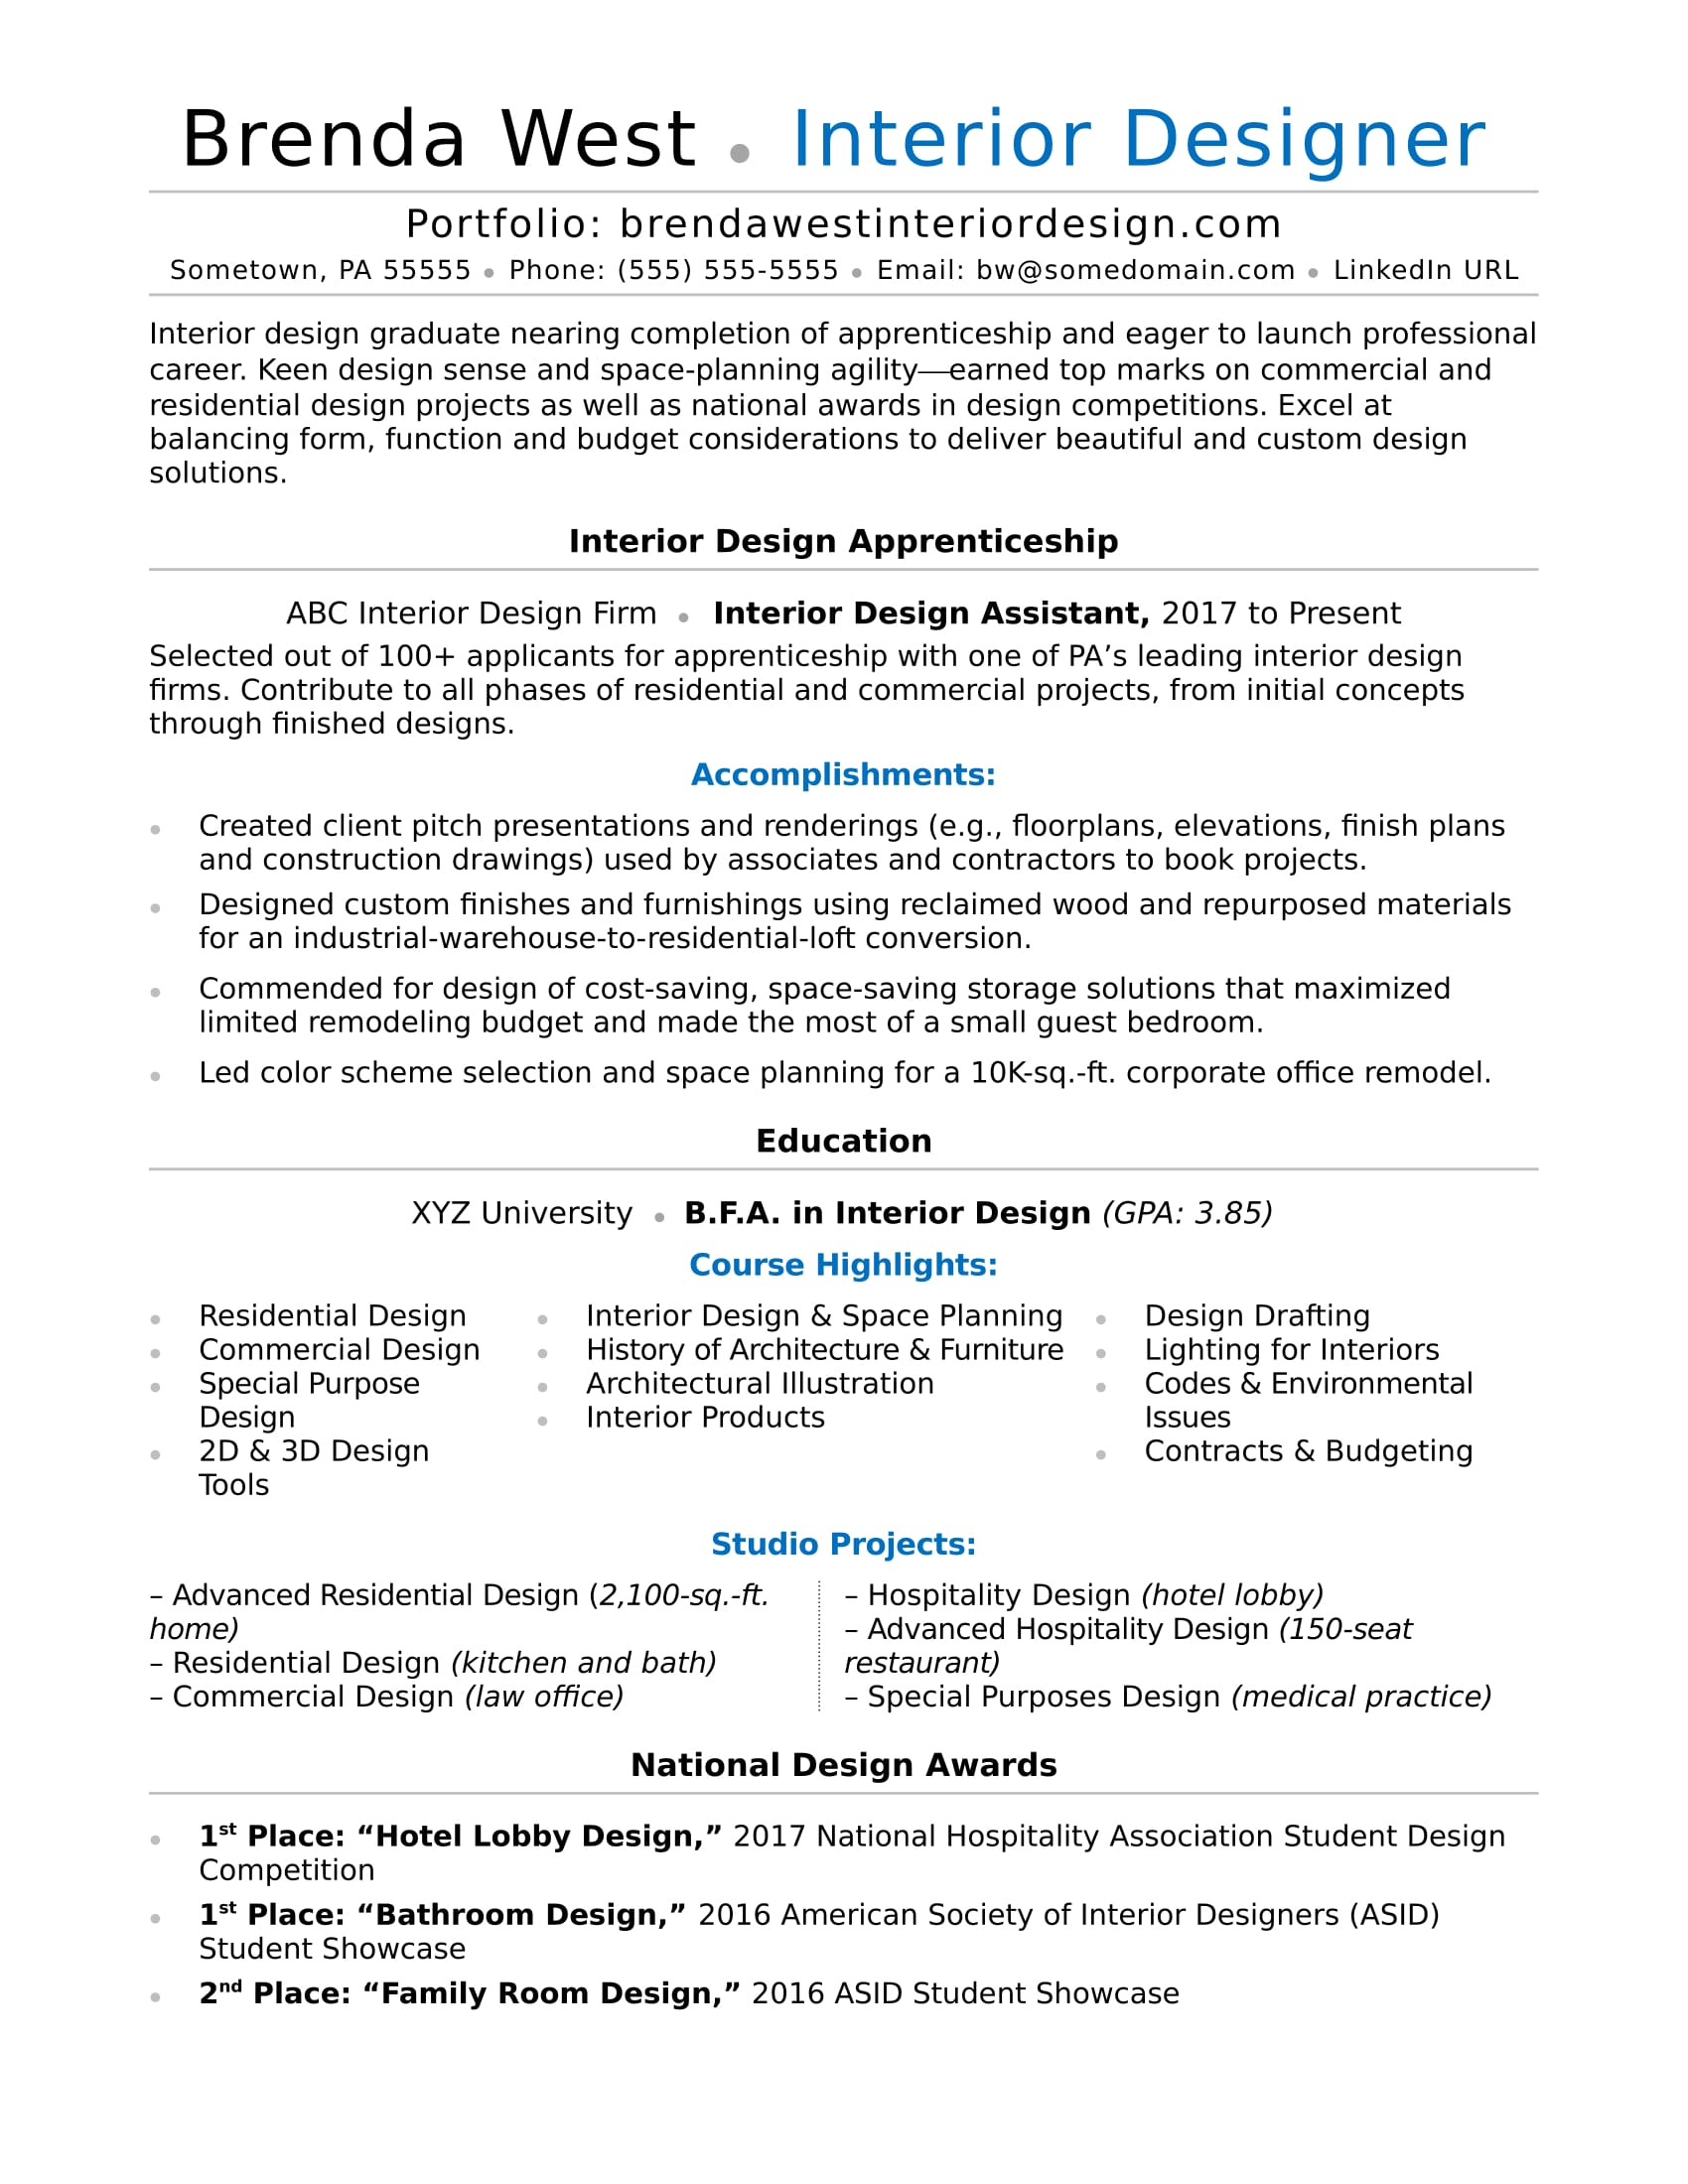 interior design resume sample - Interior Designer Resume Sample